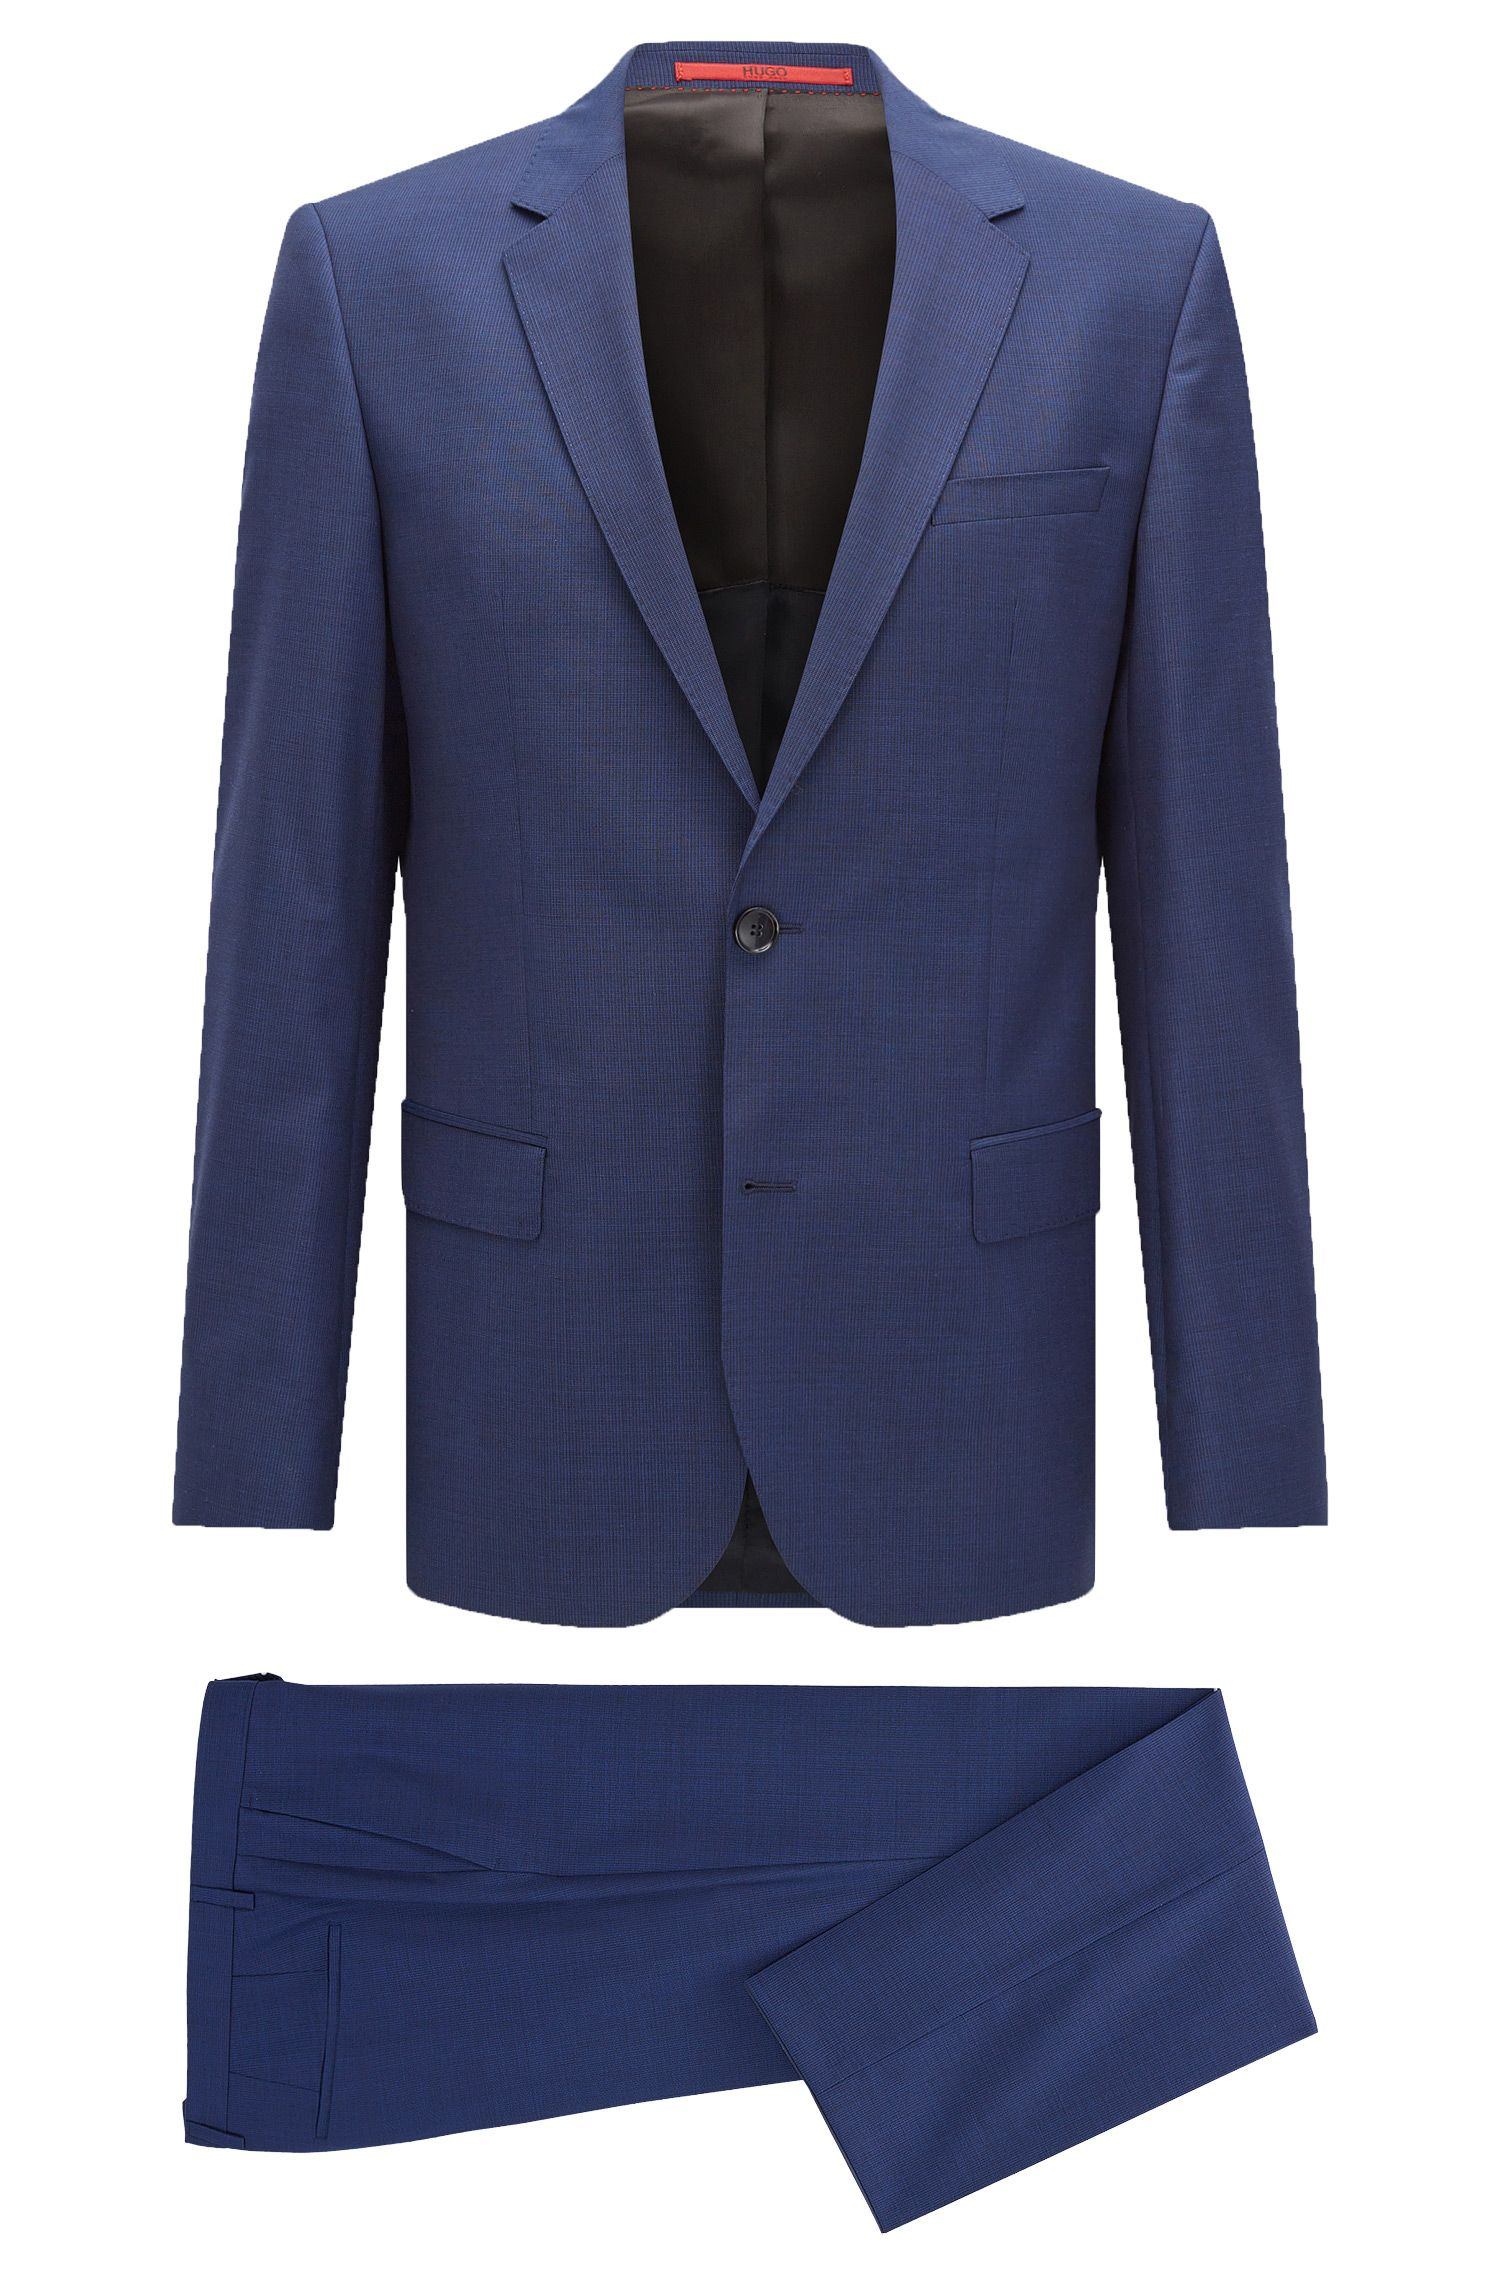 Nailhead Italian Wool Suit, Slim Fit | C-Huge/C-Genius